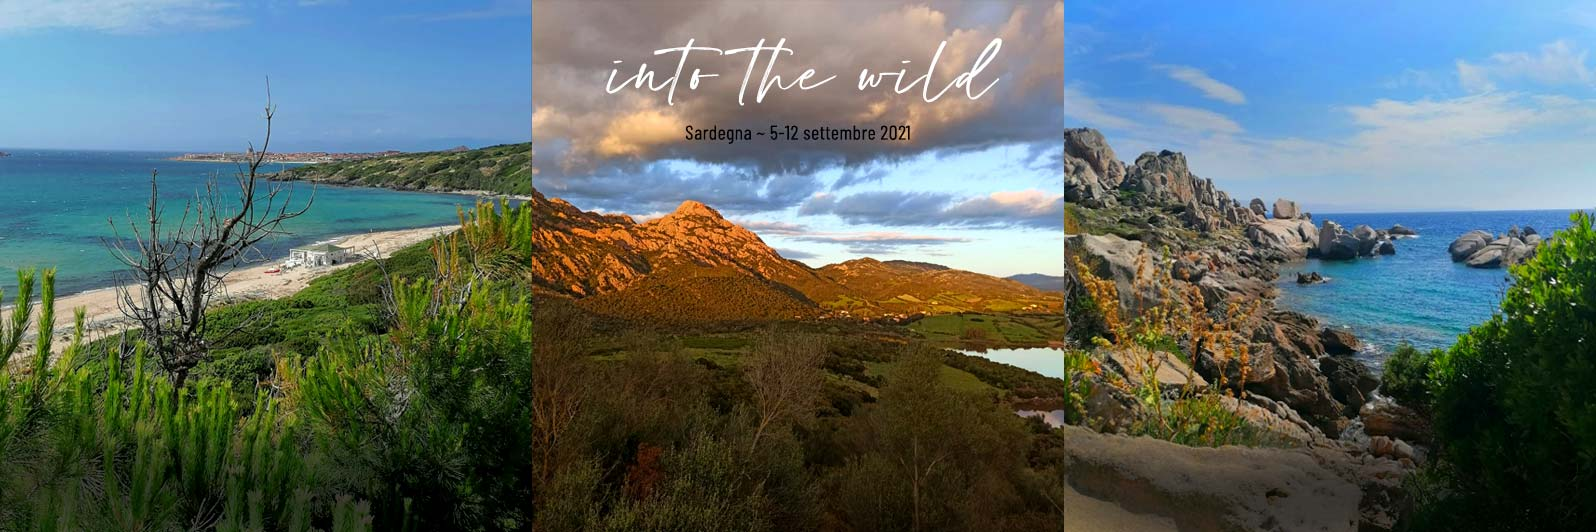 sardegna sea and mountain images into the wild flyer